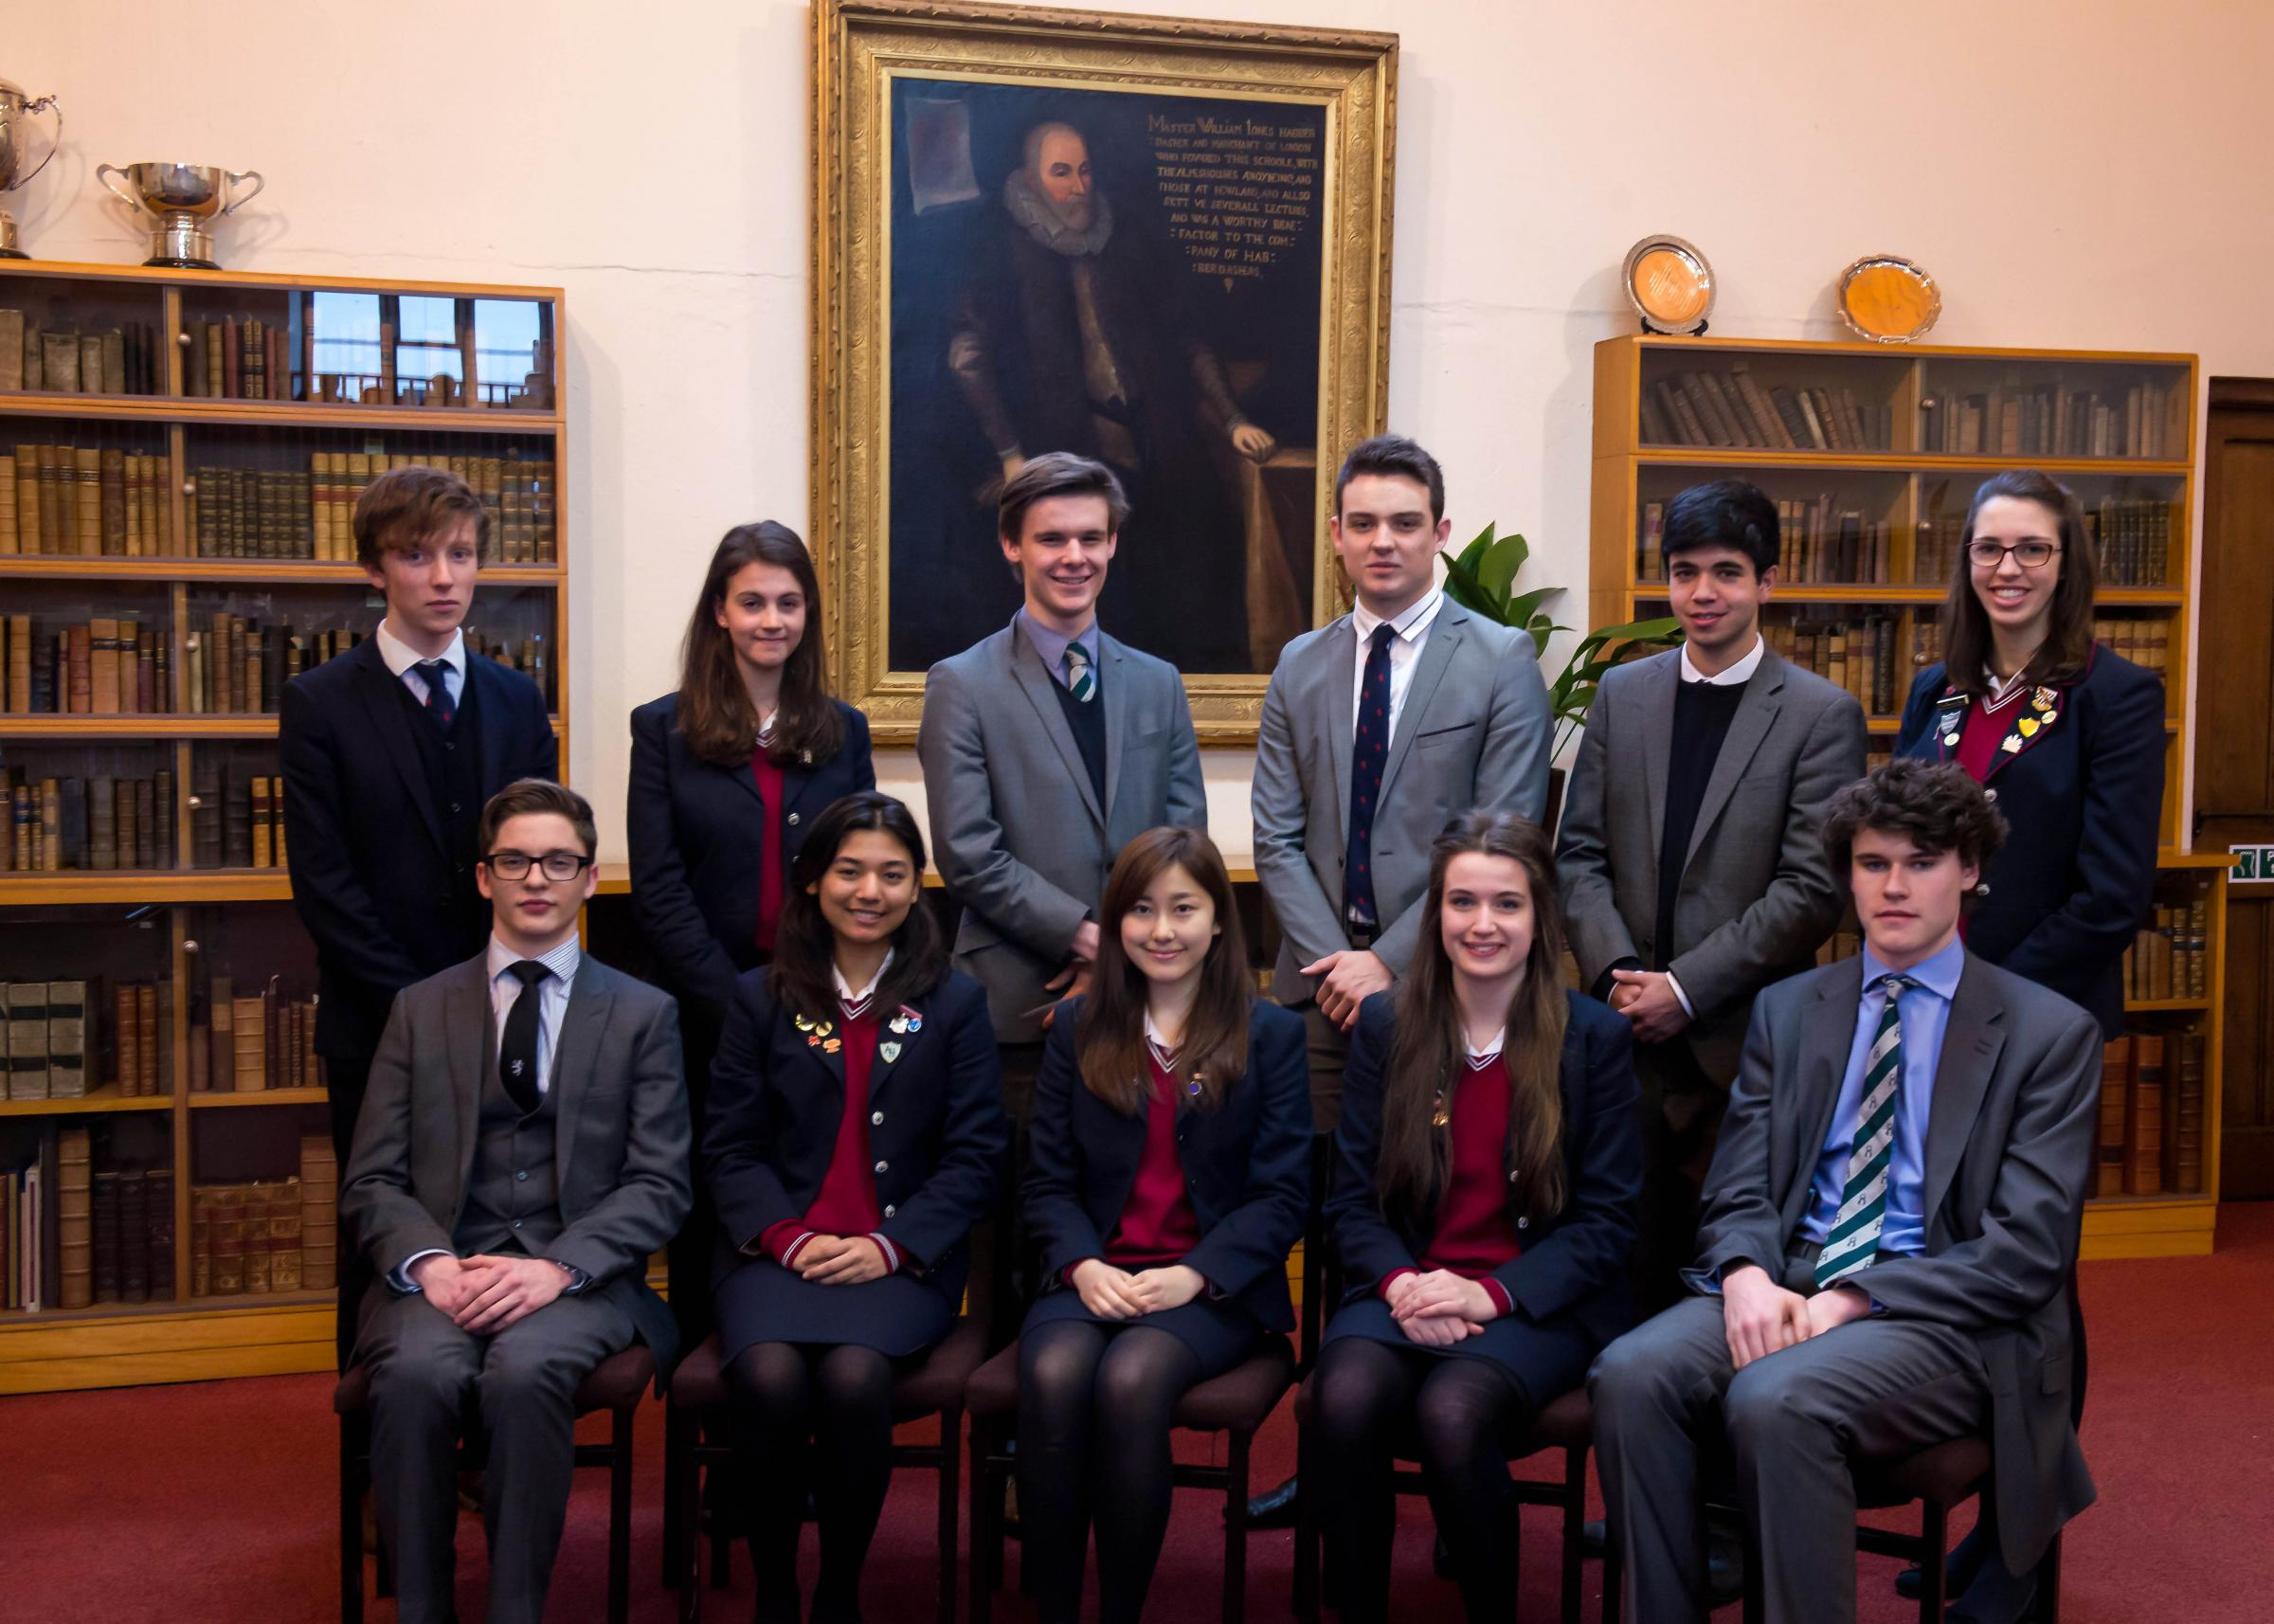 SUCCESSFUL Haberdashers' Monmouth schools Oxford and Cambridge candidates (l to r, back row), Jack Davies, Marianne Hohendorf, Ben Butt, Oliver Hudson, Devan Kuleindiren, Rachel Tilley, (front row) Wesley Nelson, Roshani Badgami, Rachel Lam, Charlotte